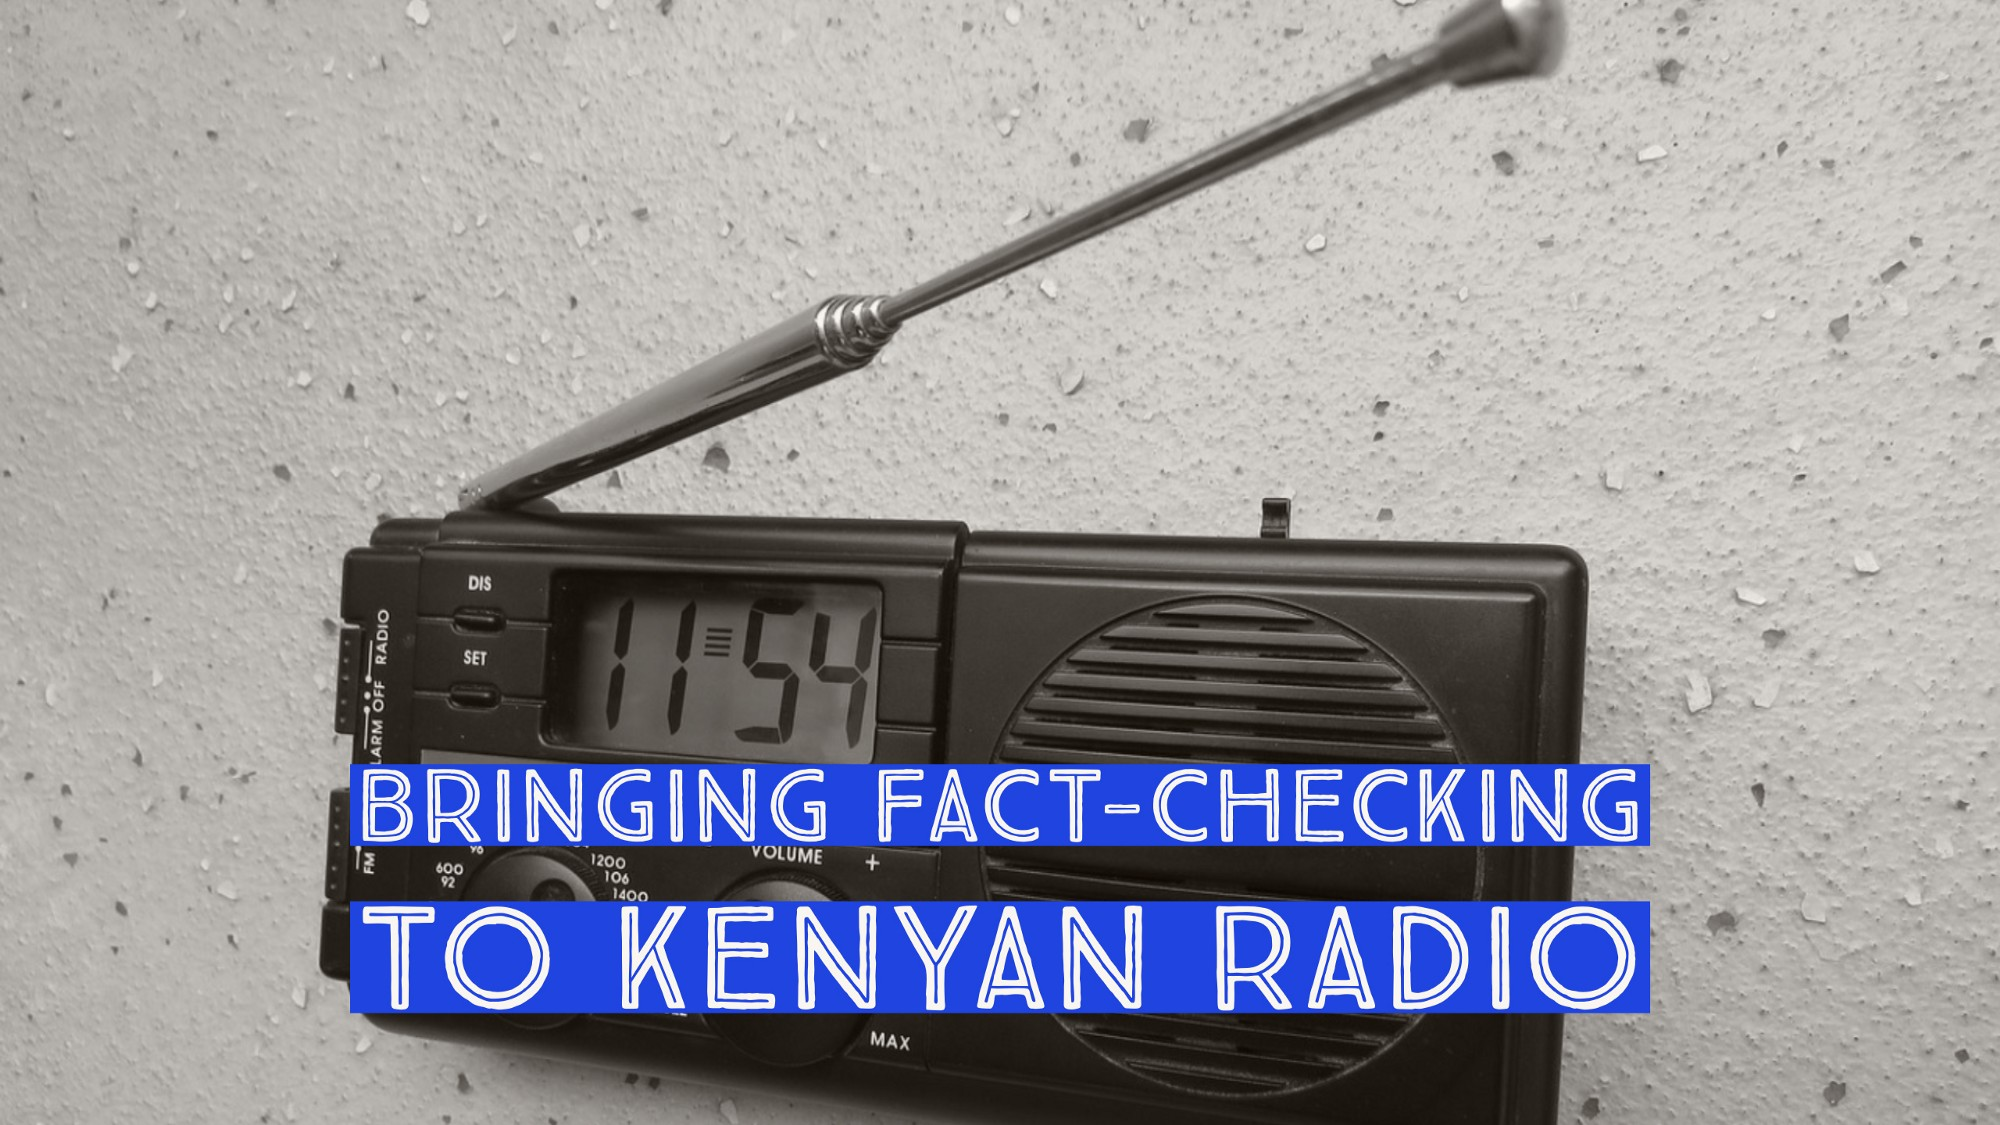 Bringing fact-checking to Kenyan radio with Fred Fact